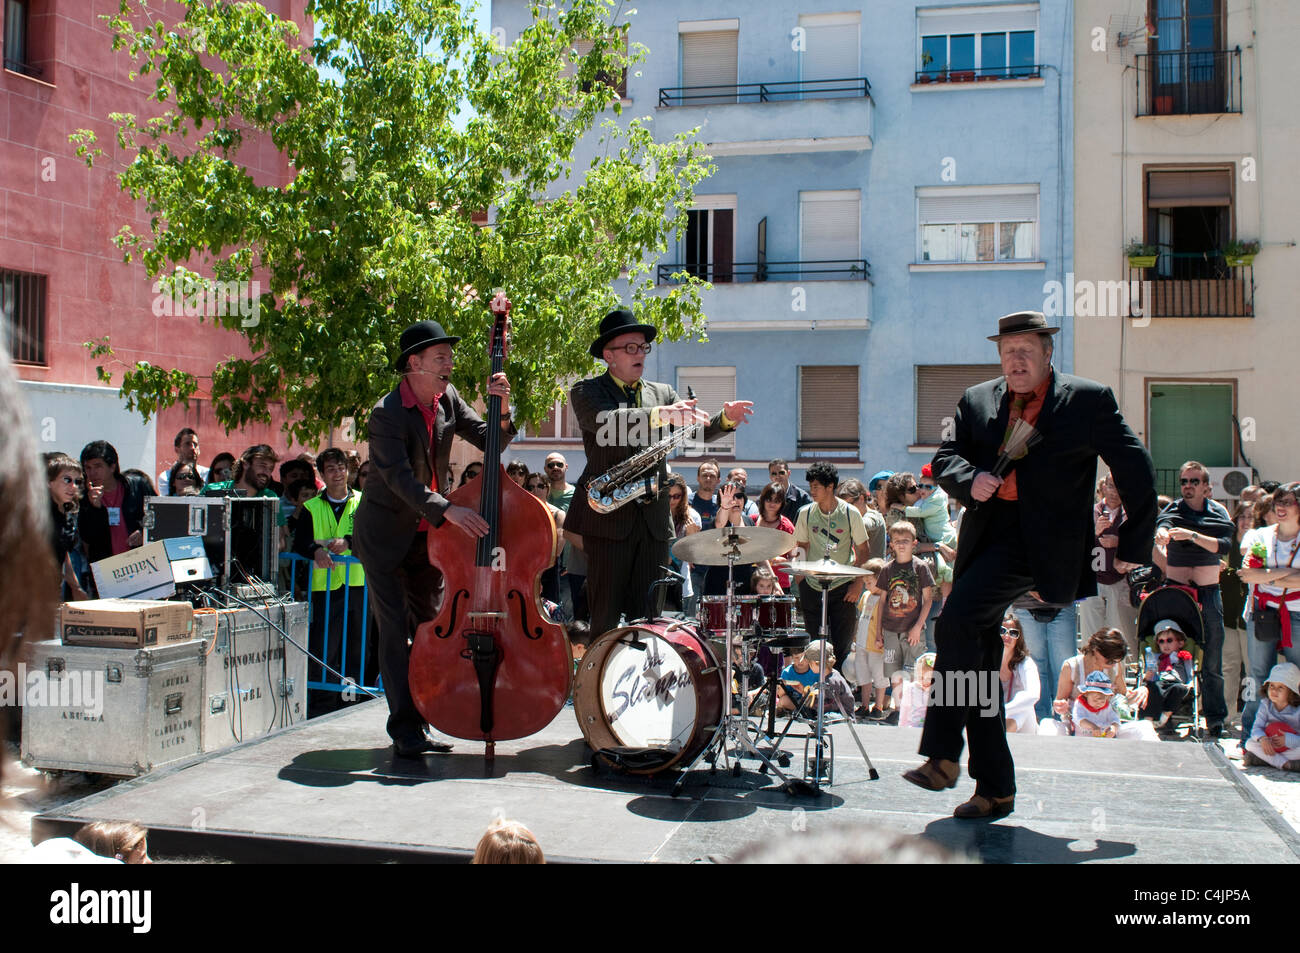 Dutch band, The Slampampers, San Isidro Festival, Plaza de la Corrala in Lavapies, Madrid, Spain - Stock Image